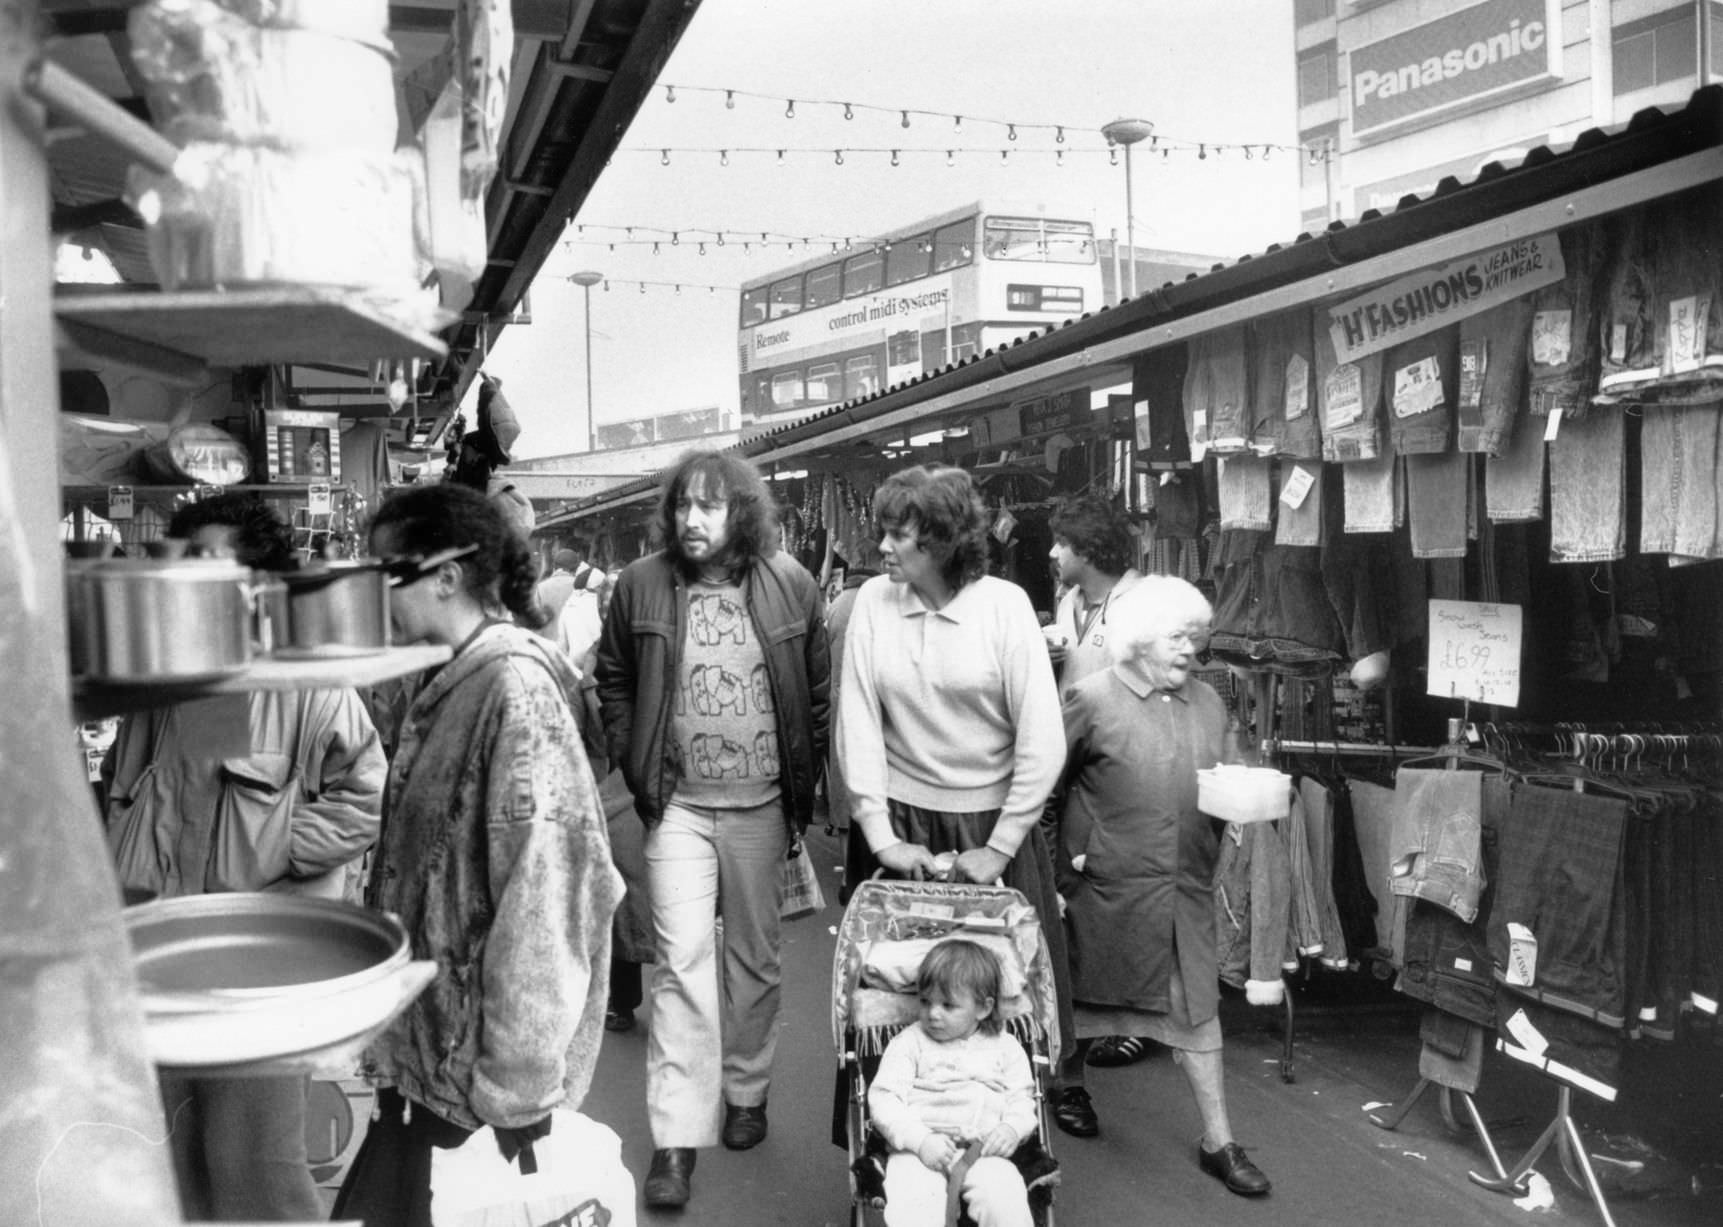 A typical Thursday afternoon in the open air markets in the Bull Ring, 10th December 1987.